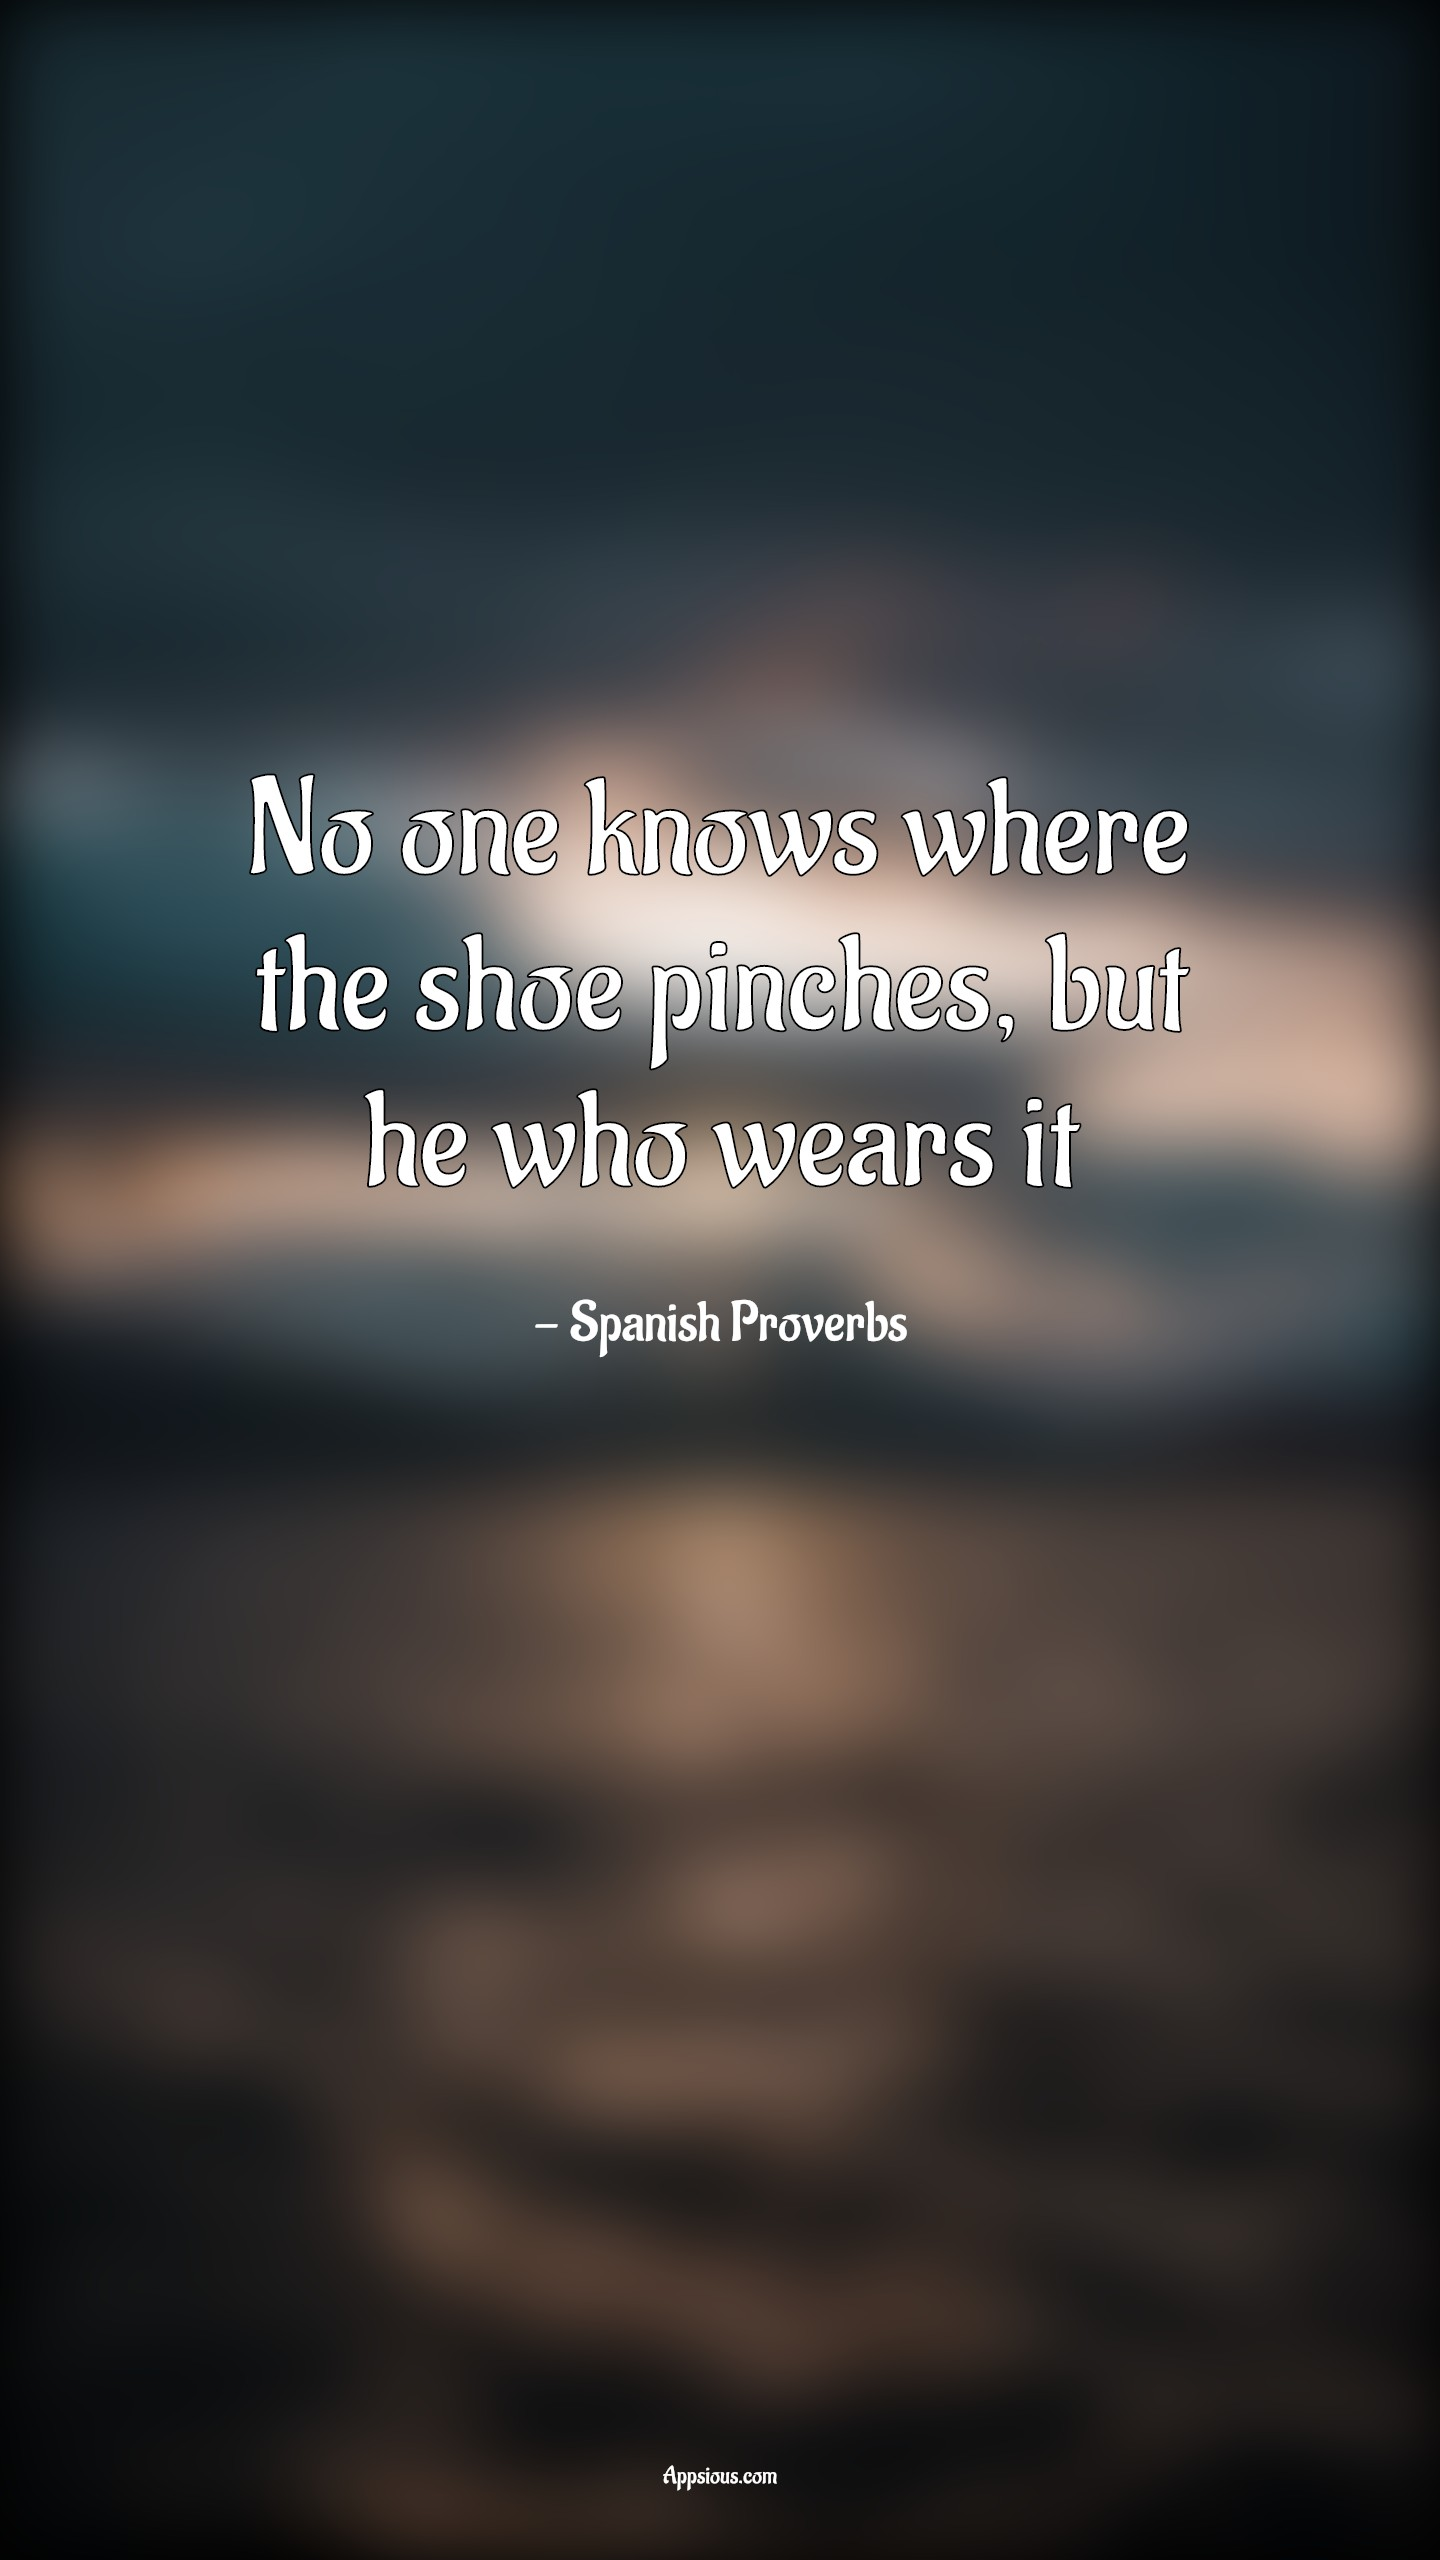 No one knows where the shoe pinches, but he who wears it